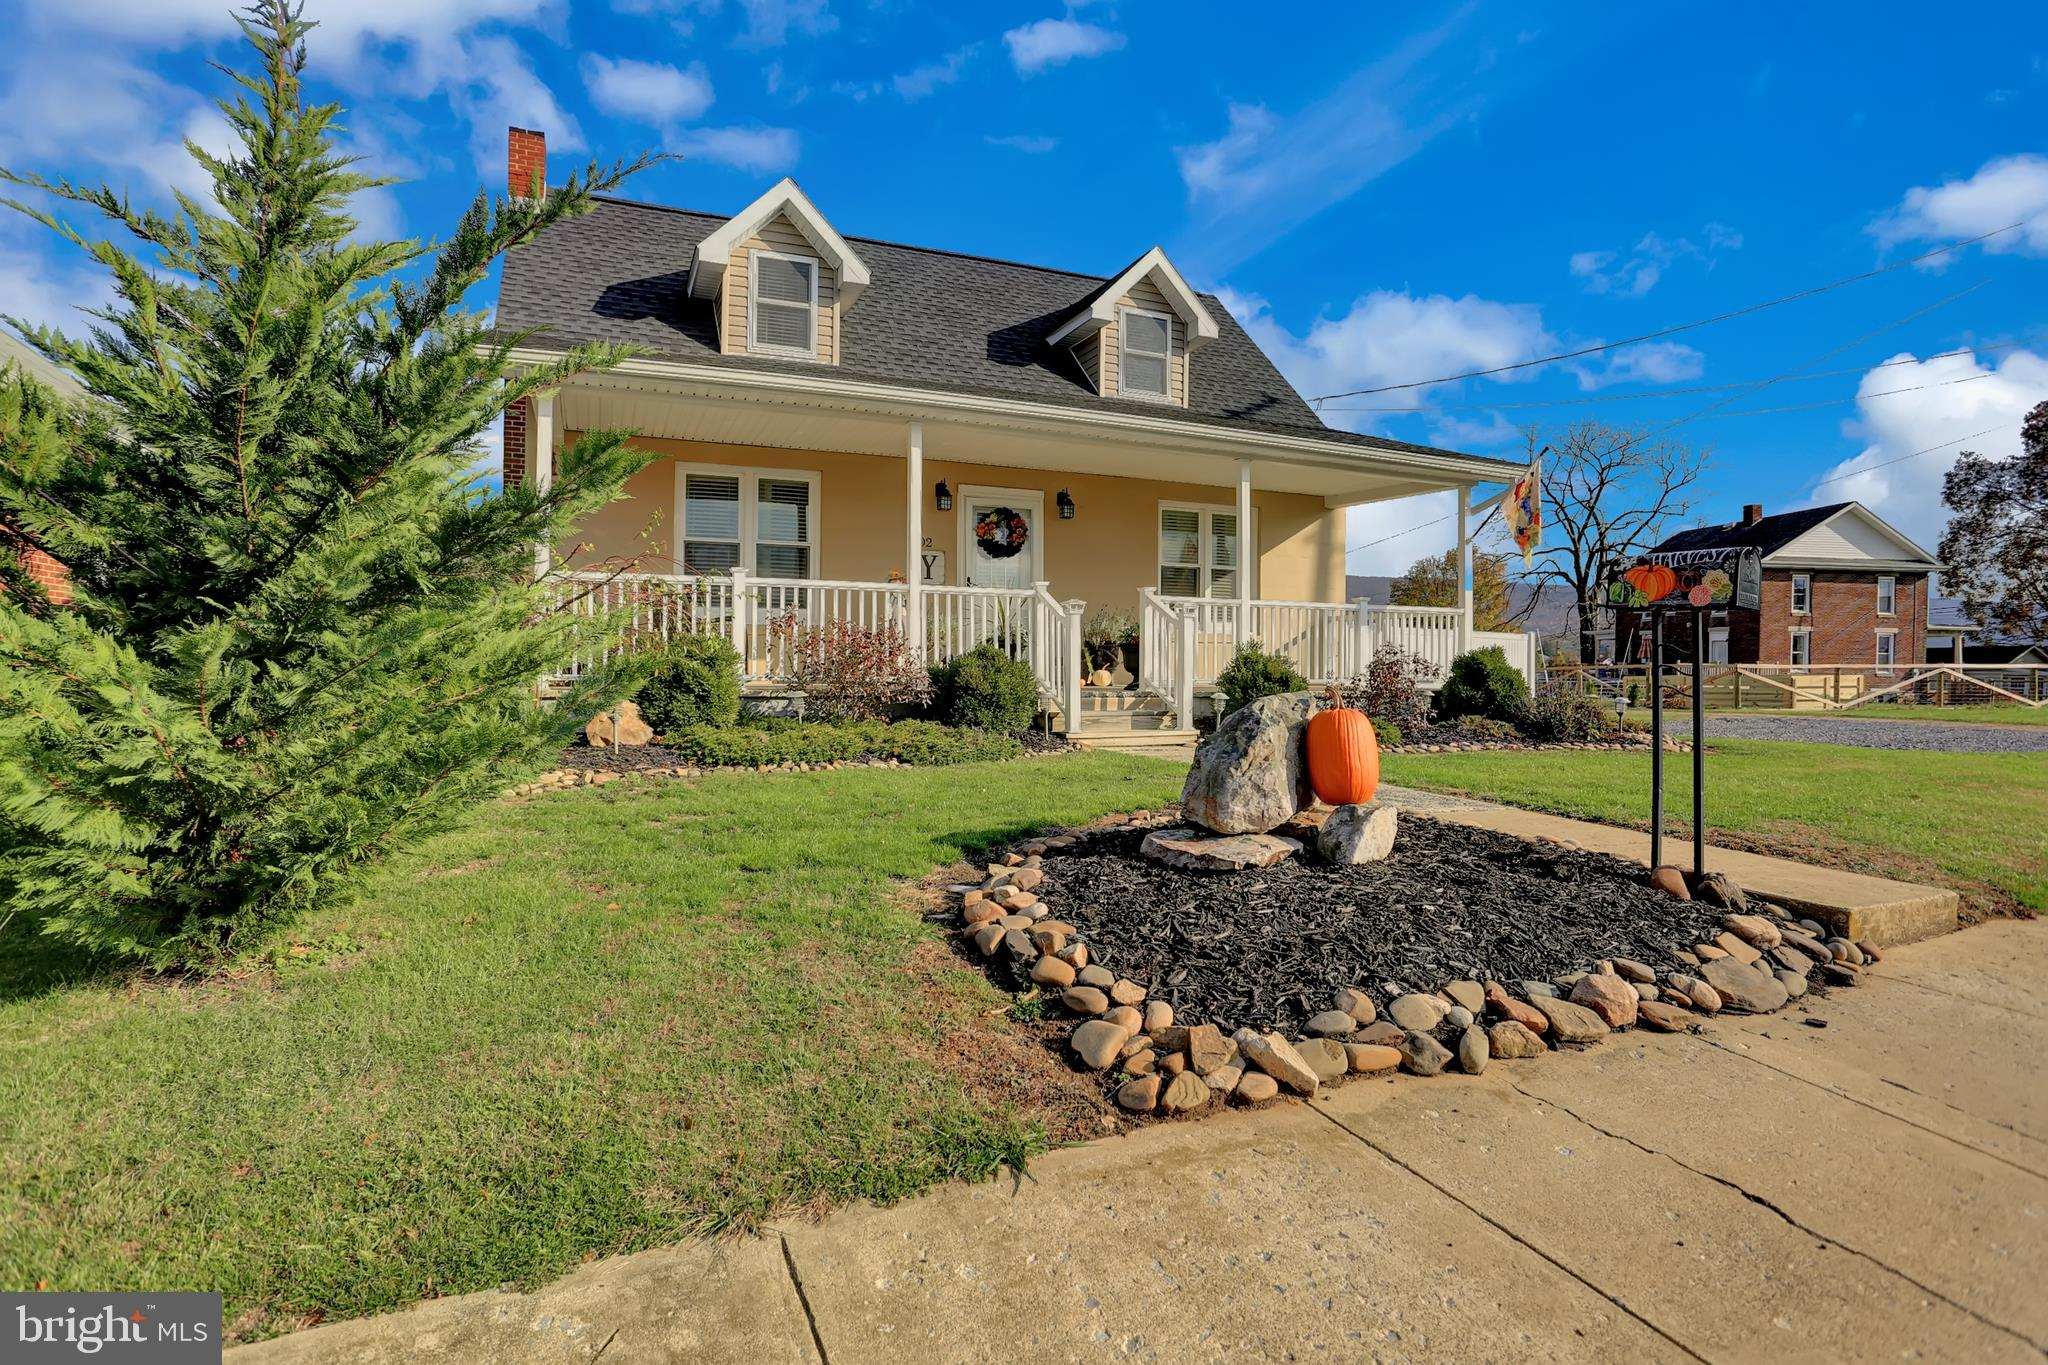 402 N 4TH STREET, MC CONNELLSBURG, PA 17233